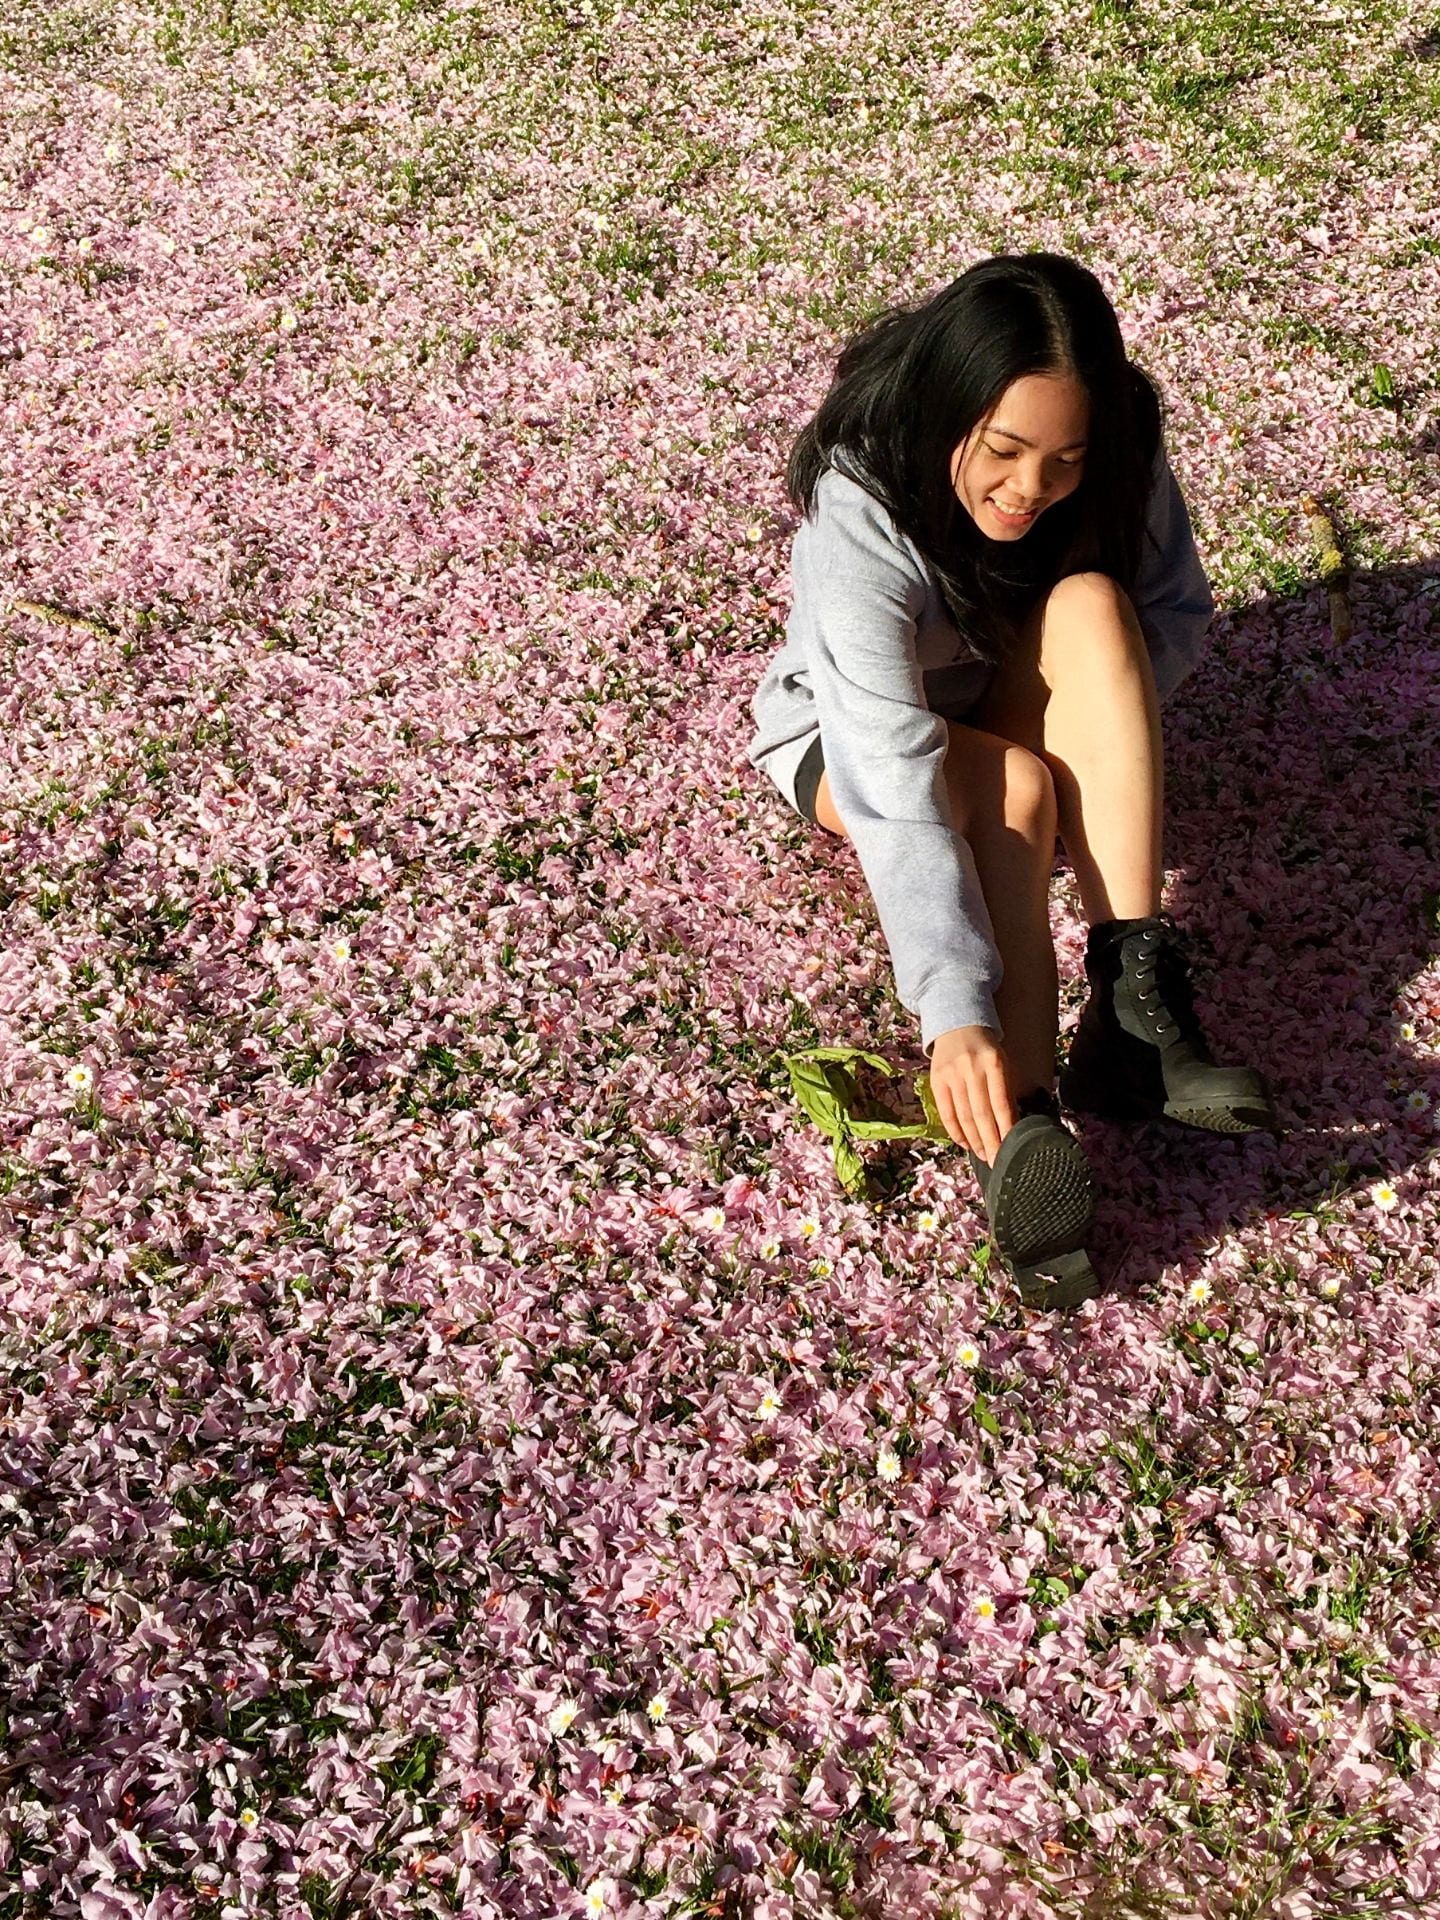 A girl sat in flowers smiling